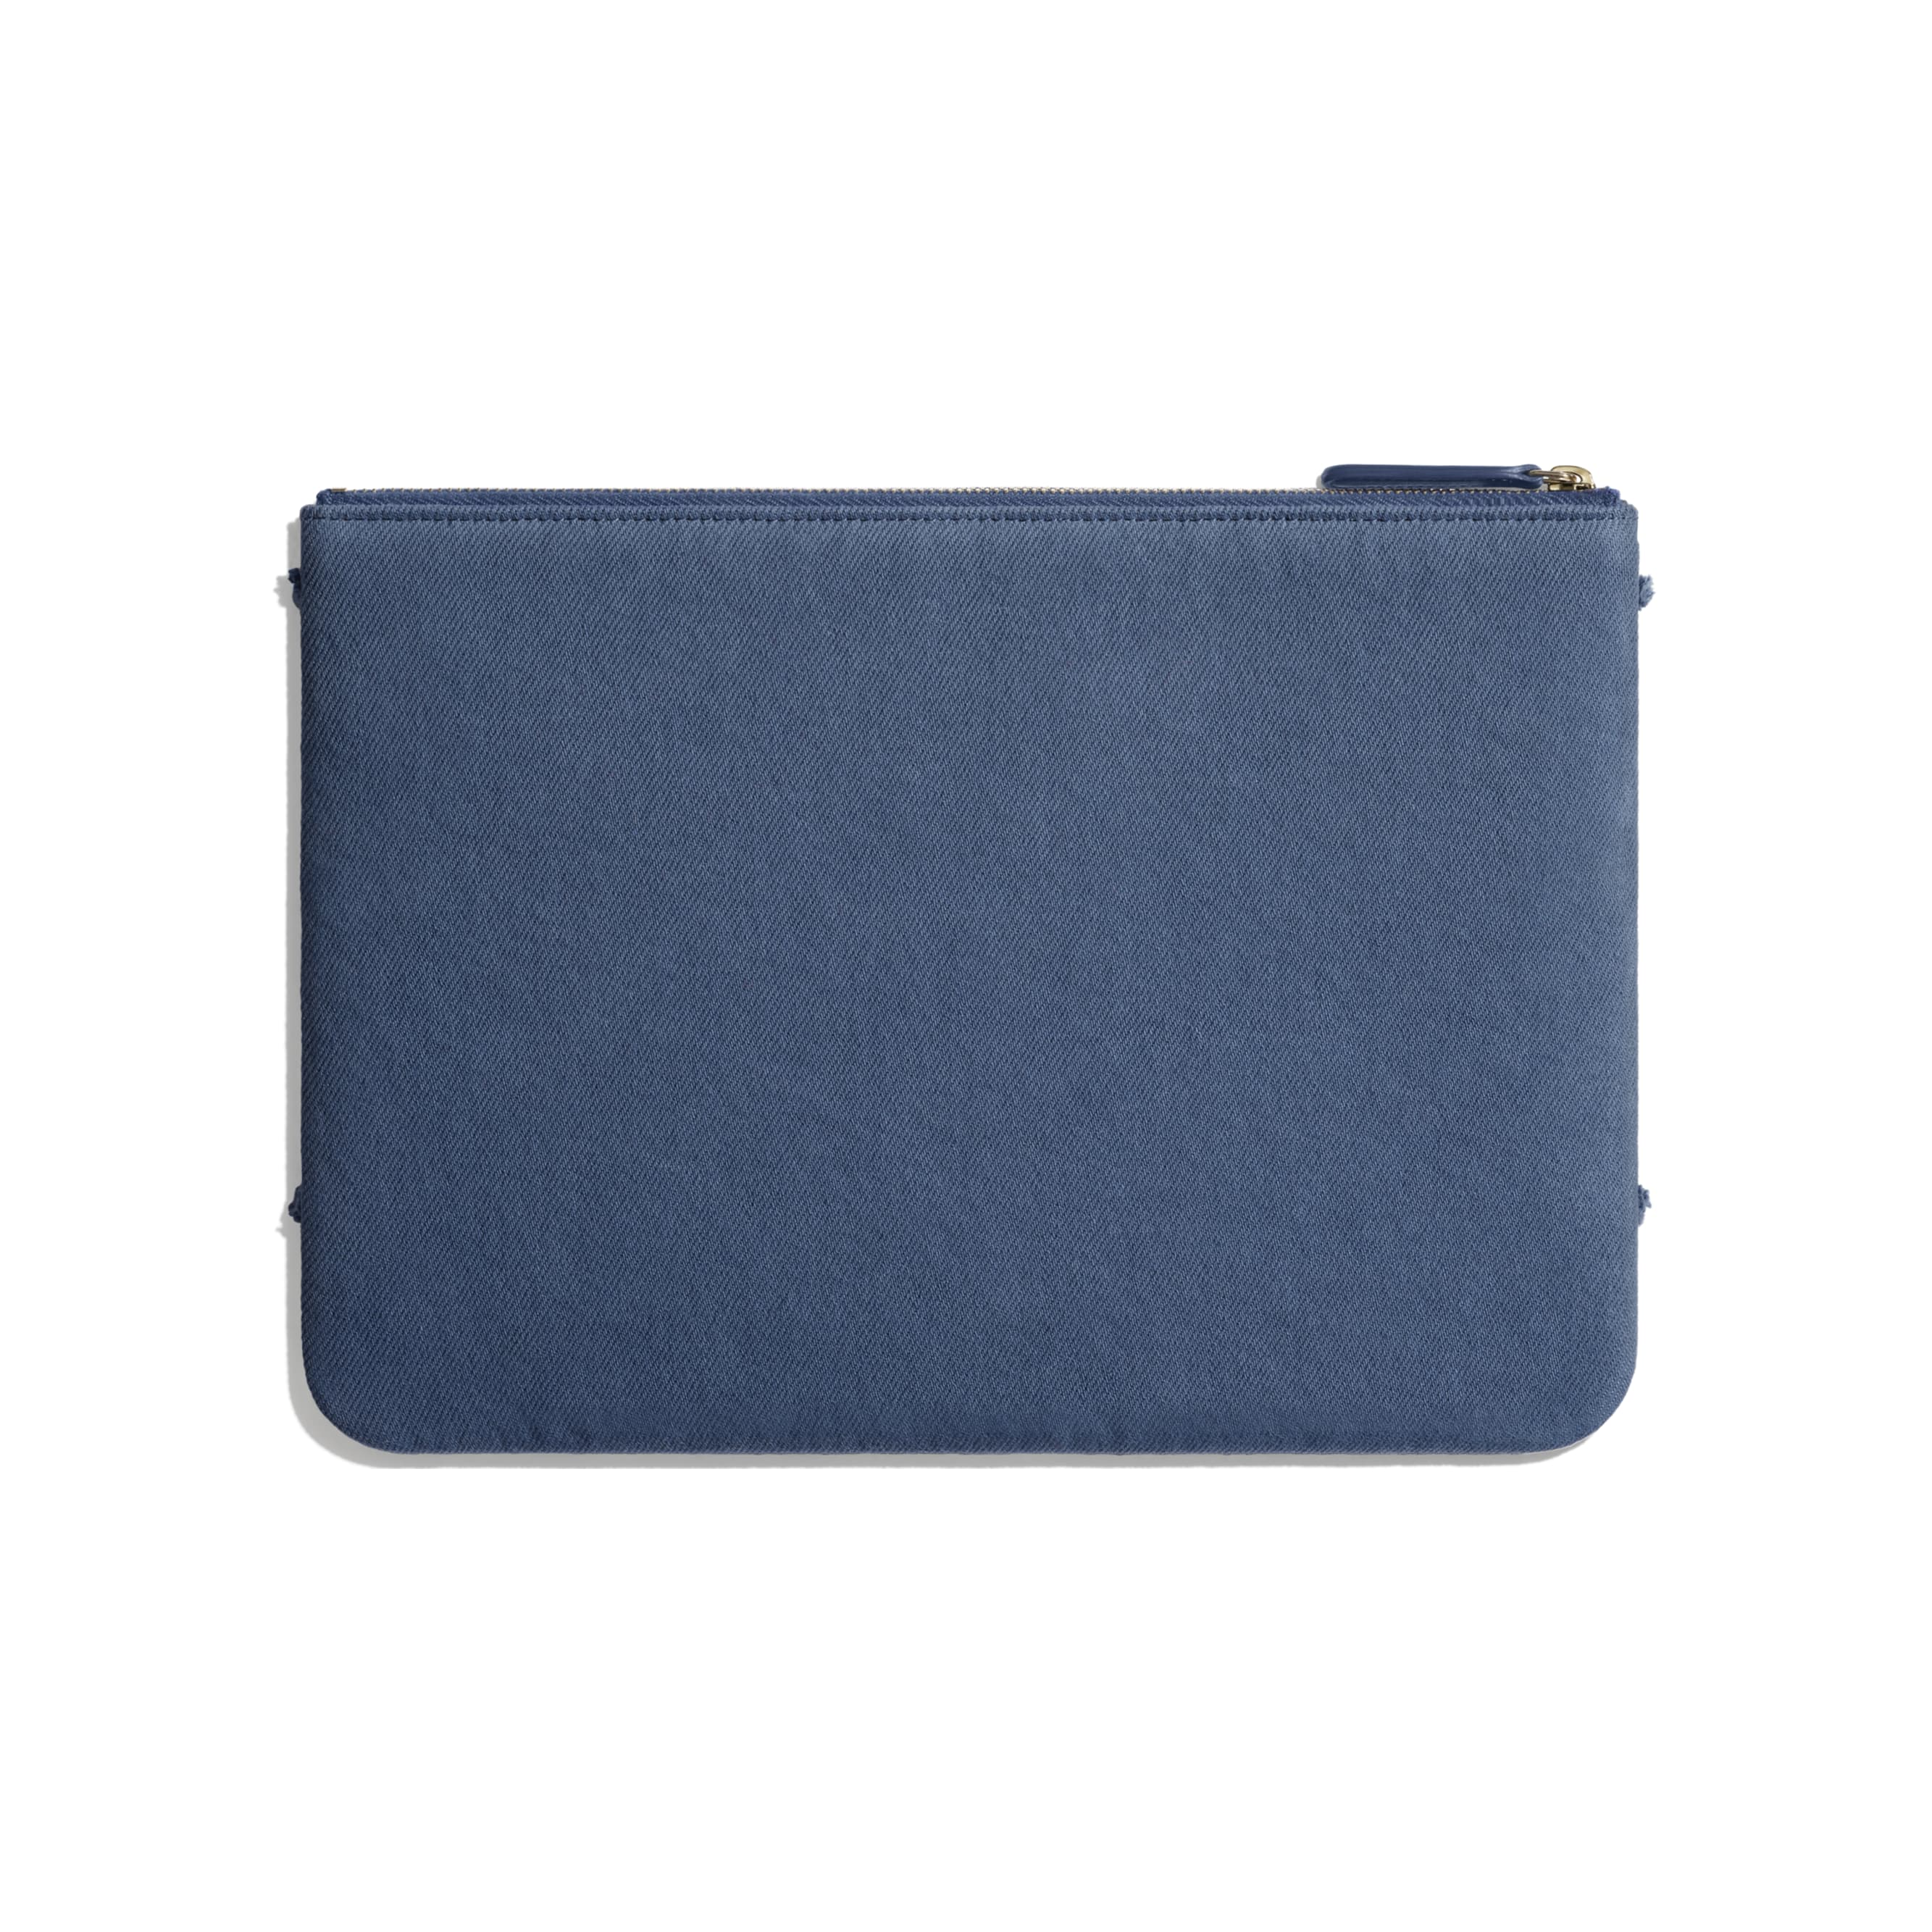 Pouch - Navy Blue - Denim & Gold Metal - Alternative view - see standard sized version